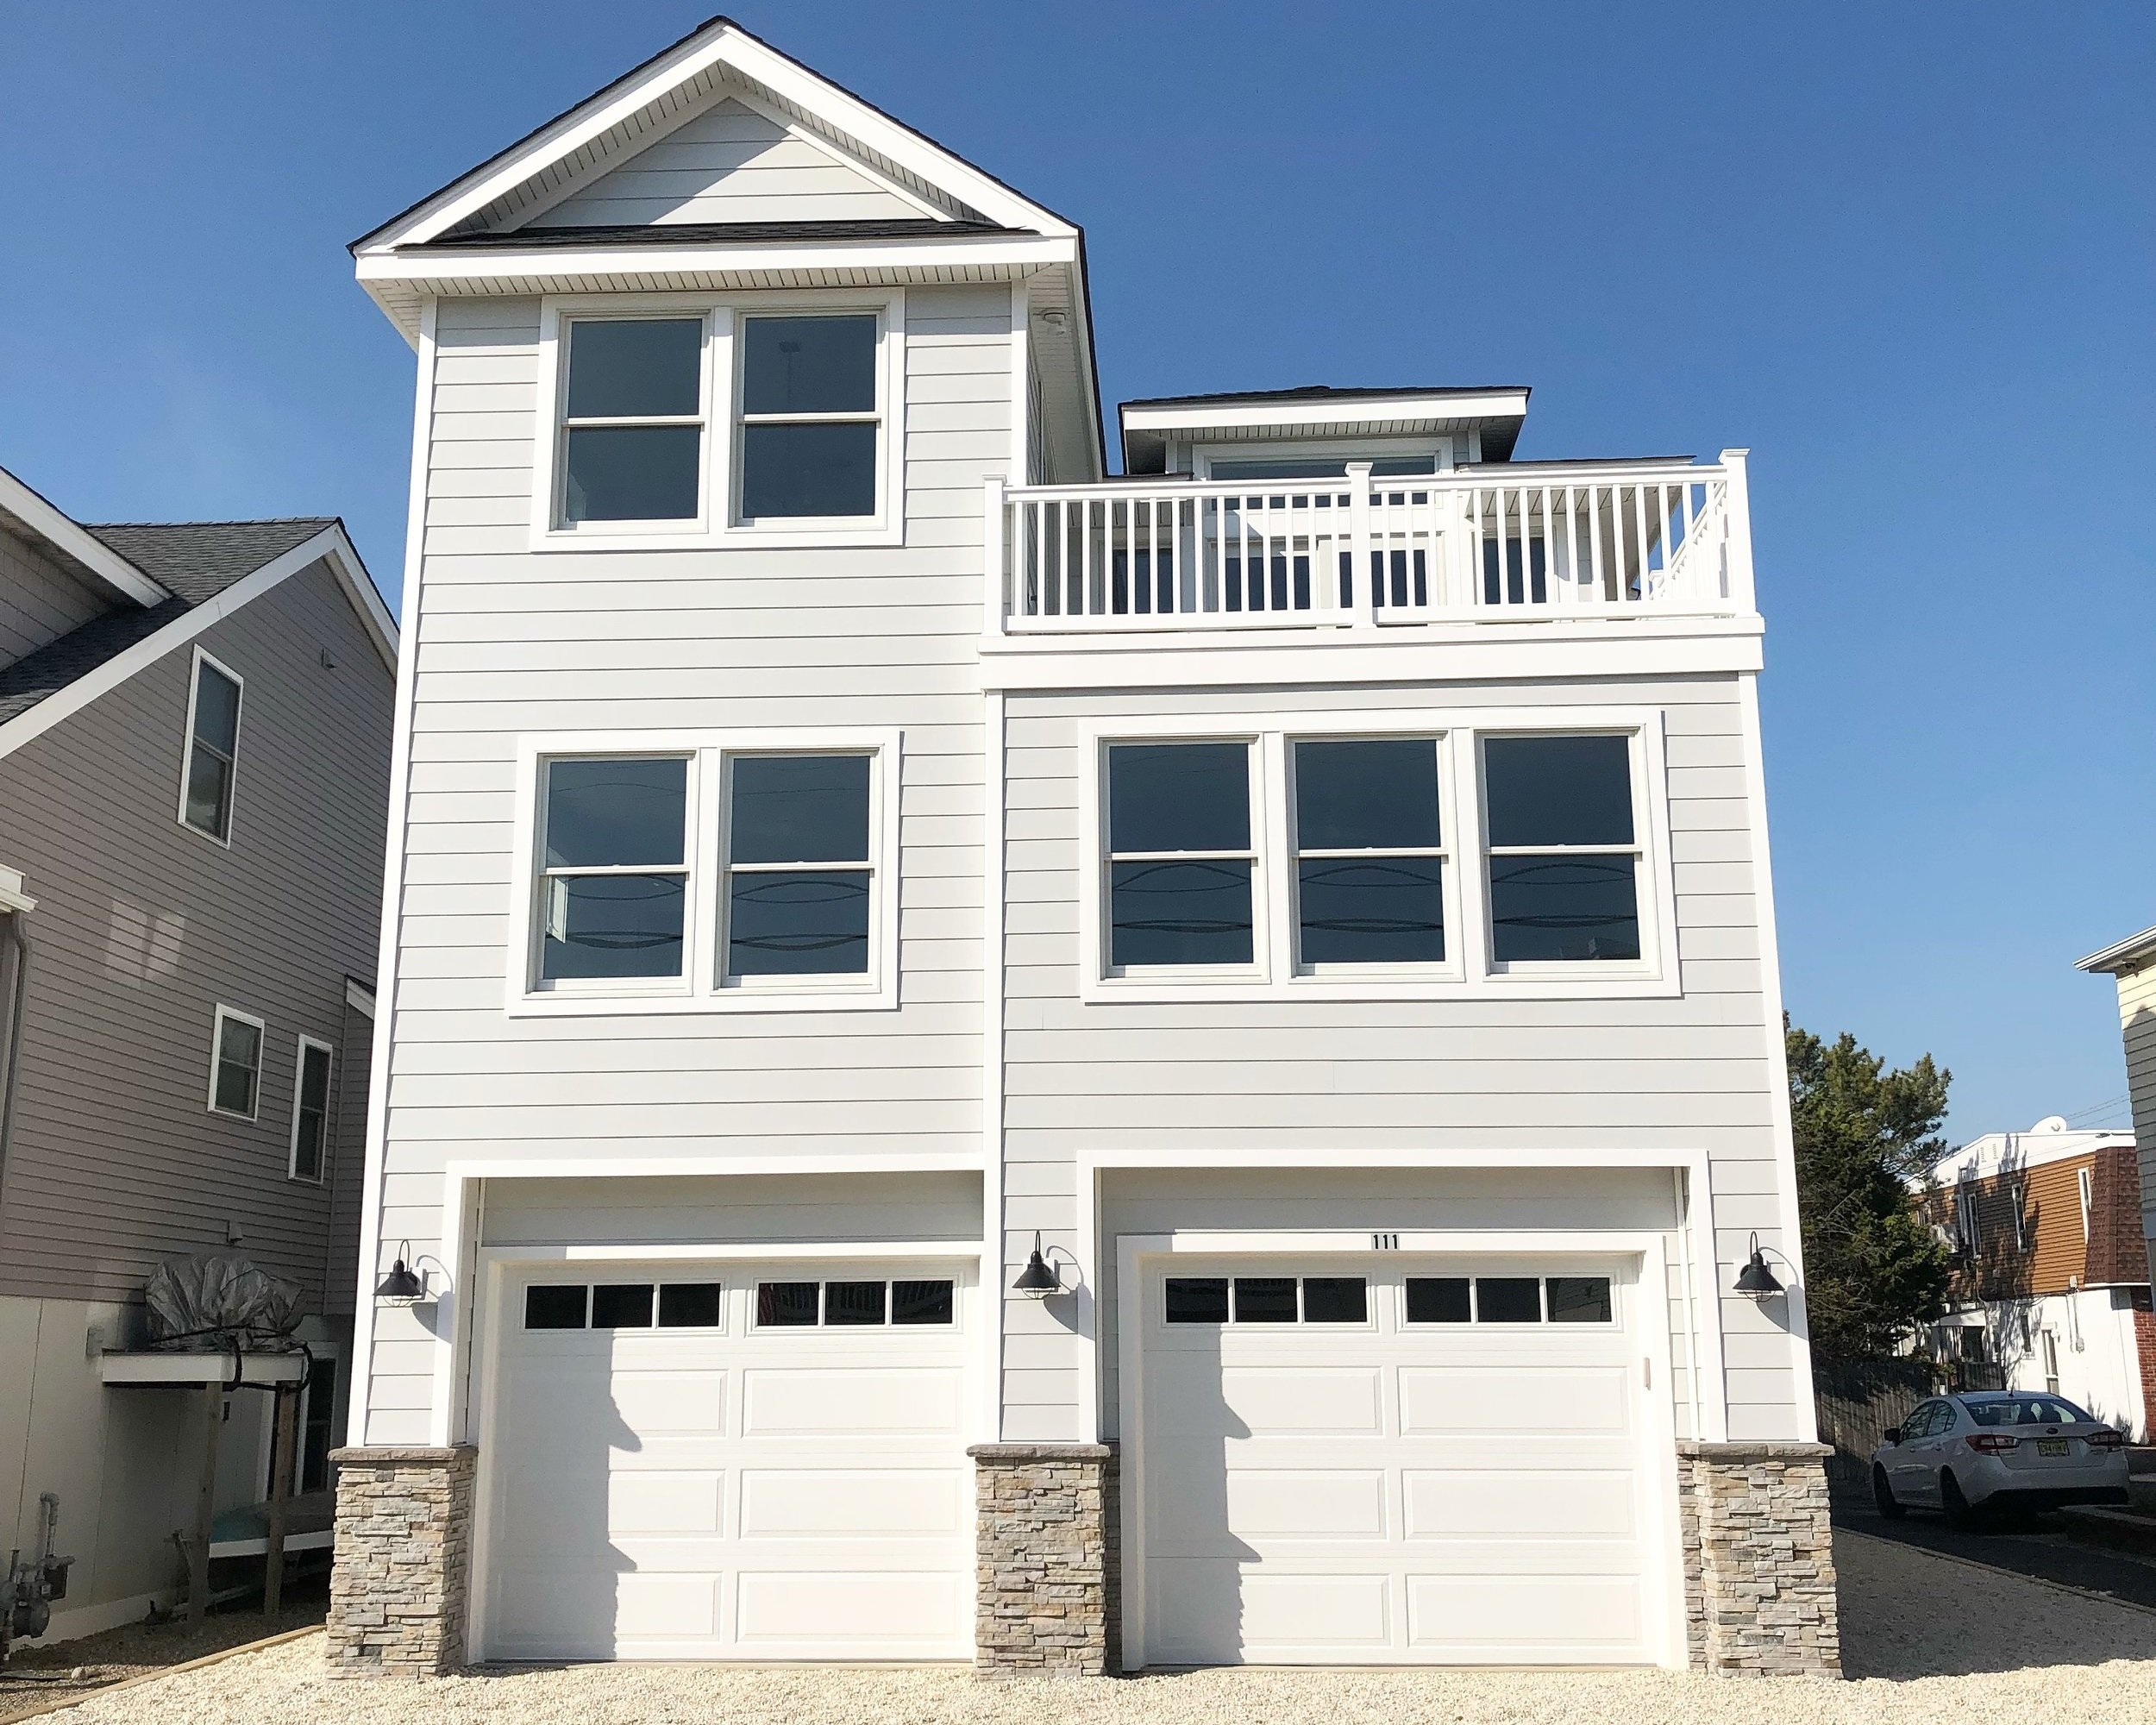 Surf City, NJ - 5 Bedroom, 3.5 baths - Sleeps 10